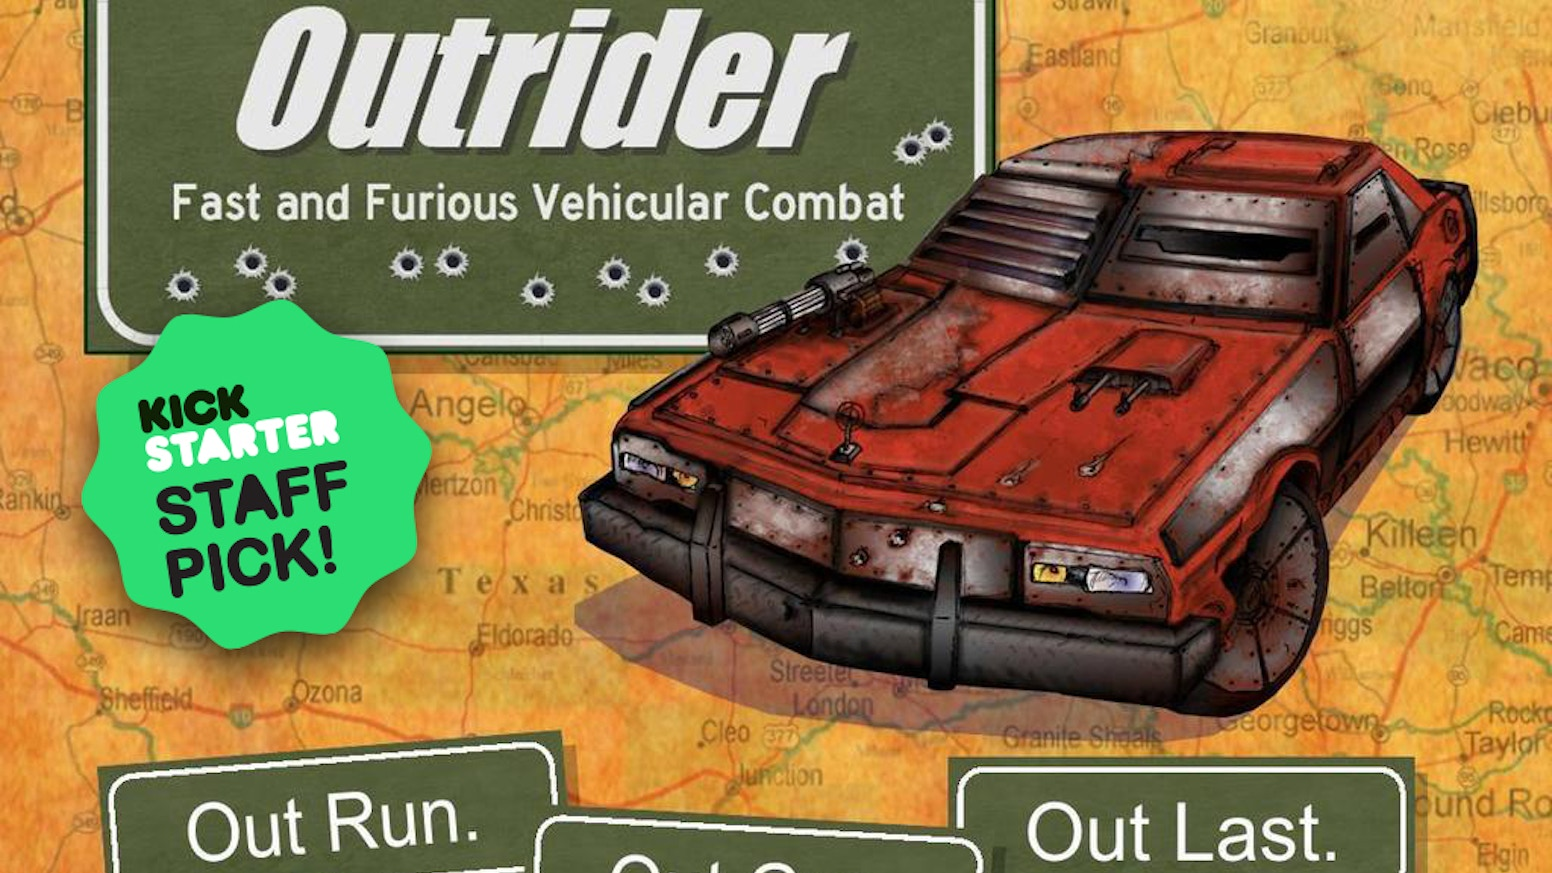 Outrider is tabletop game that turns your kitchen table into a post-apocalyptic war zone.